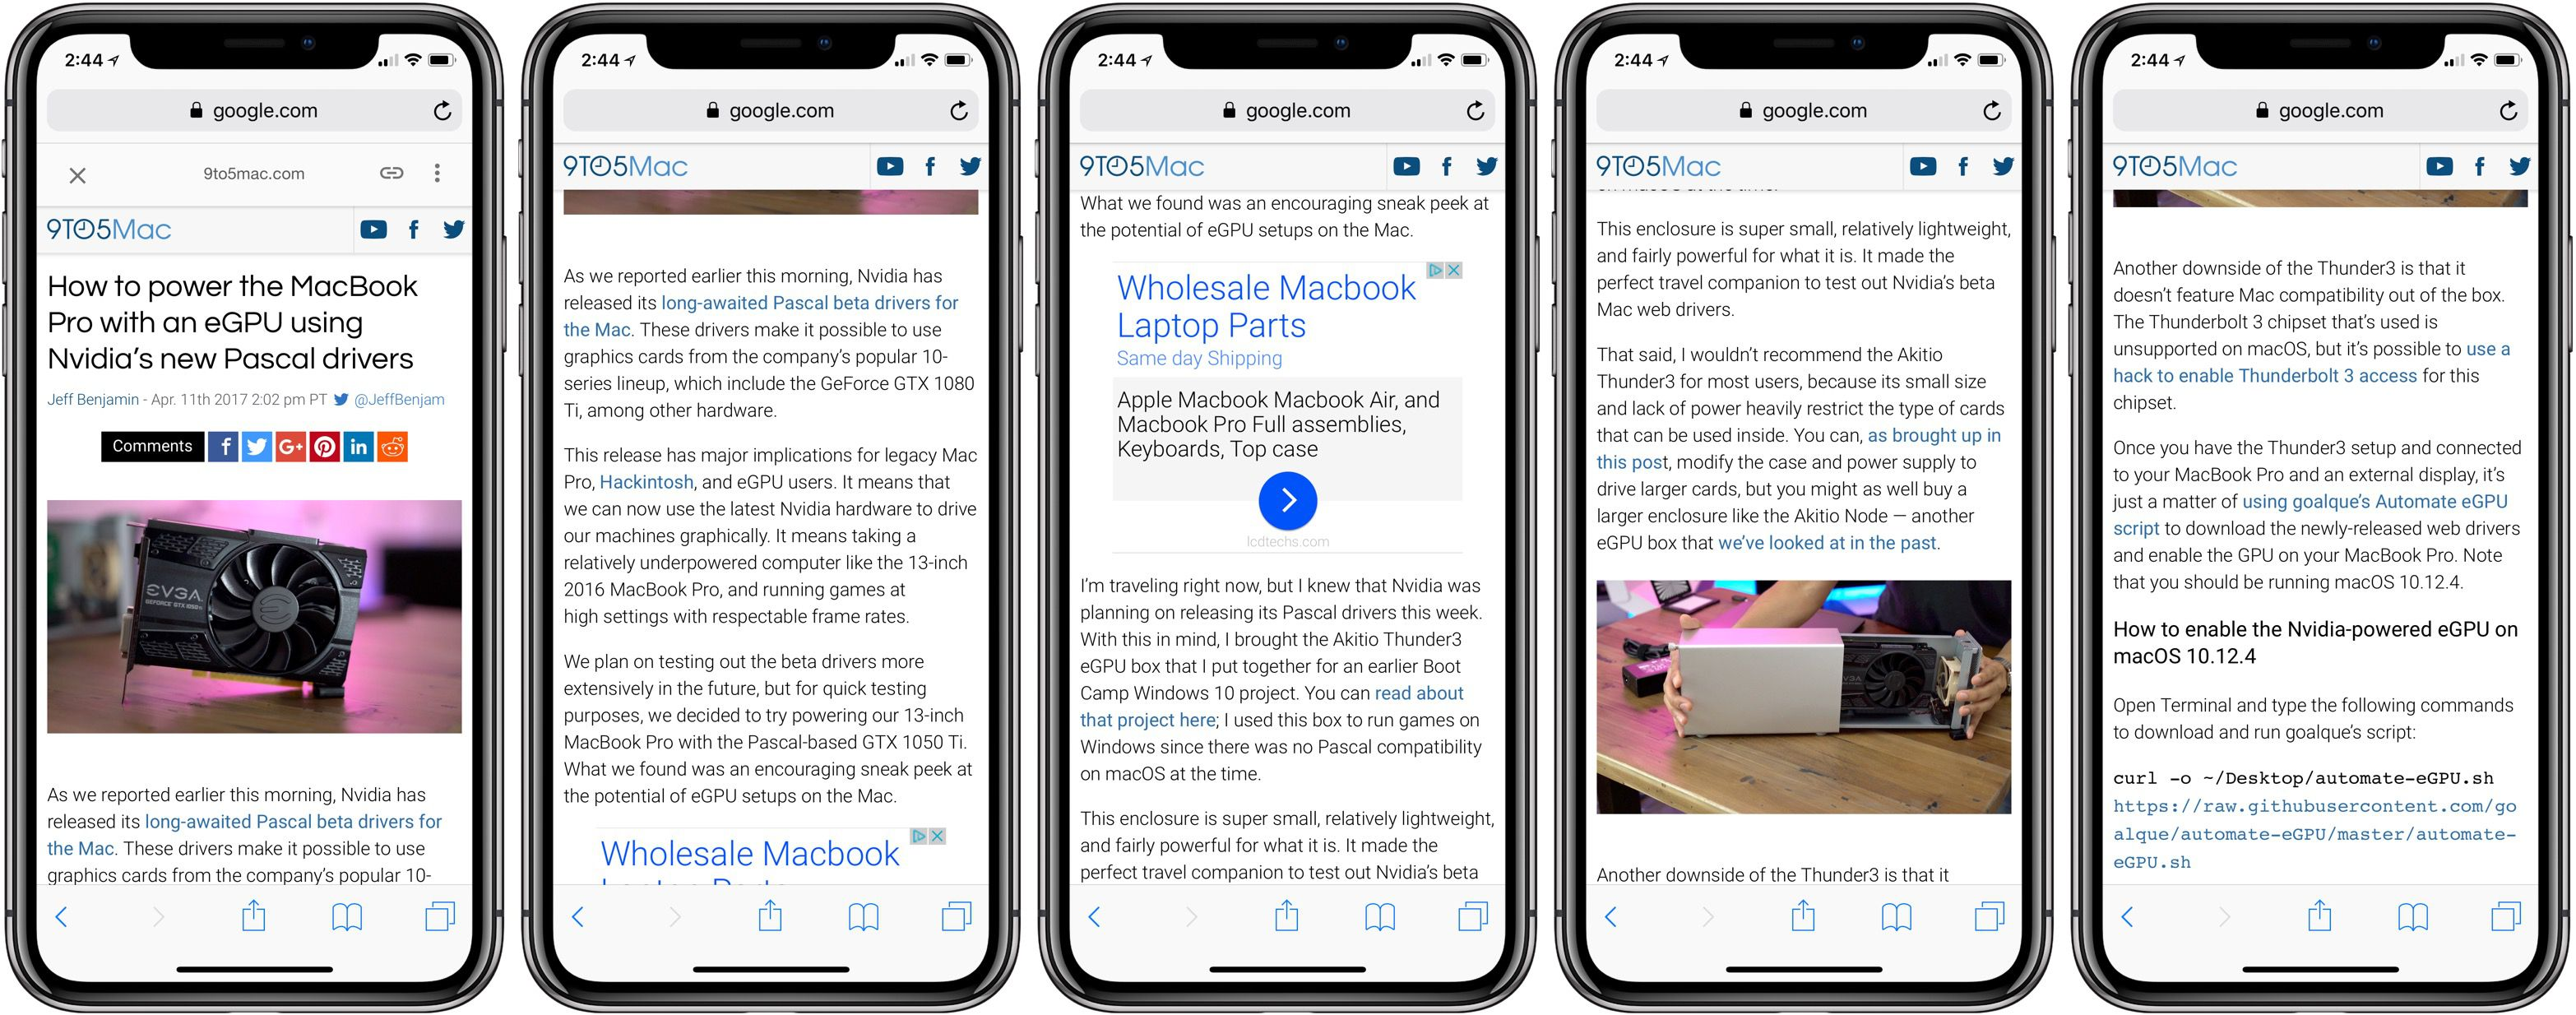 How To Combine Multiple Screenshots Into A Single Image On Iphone